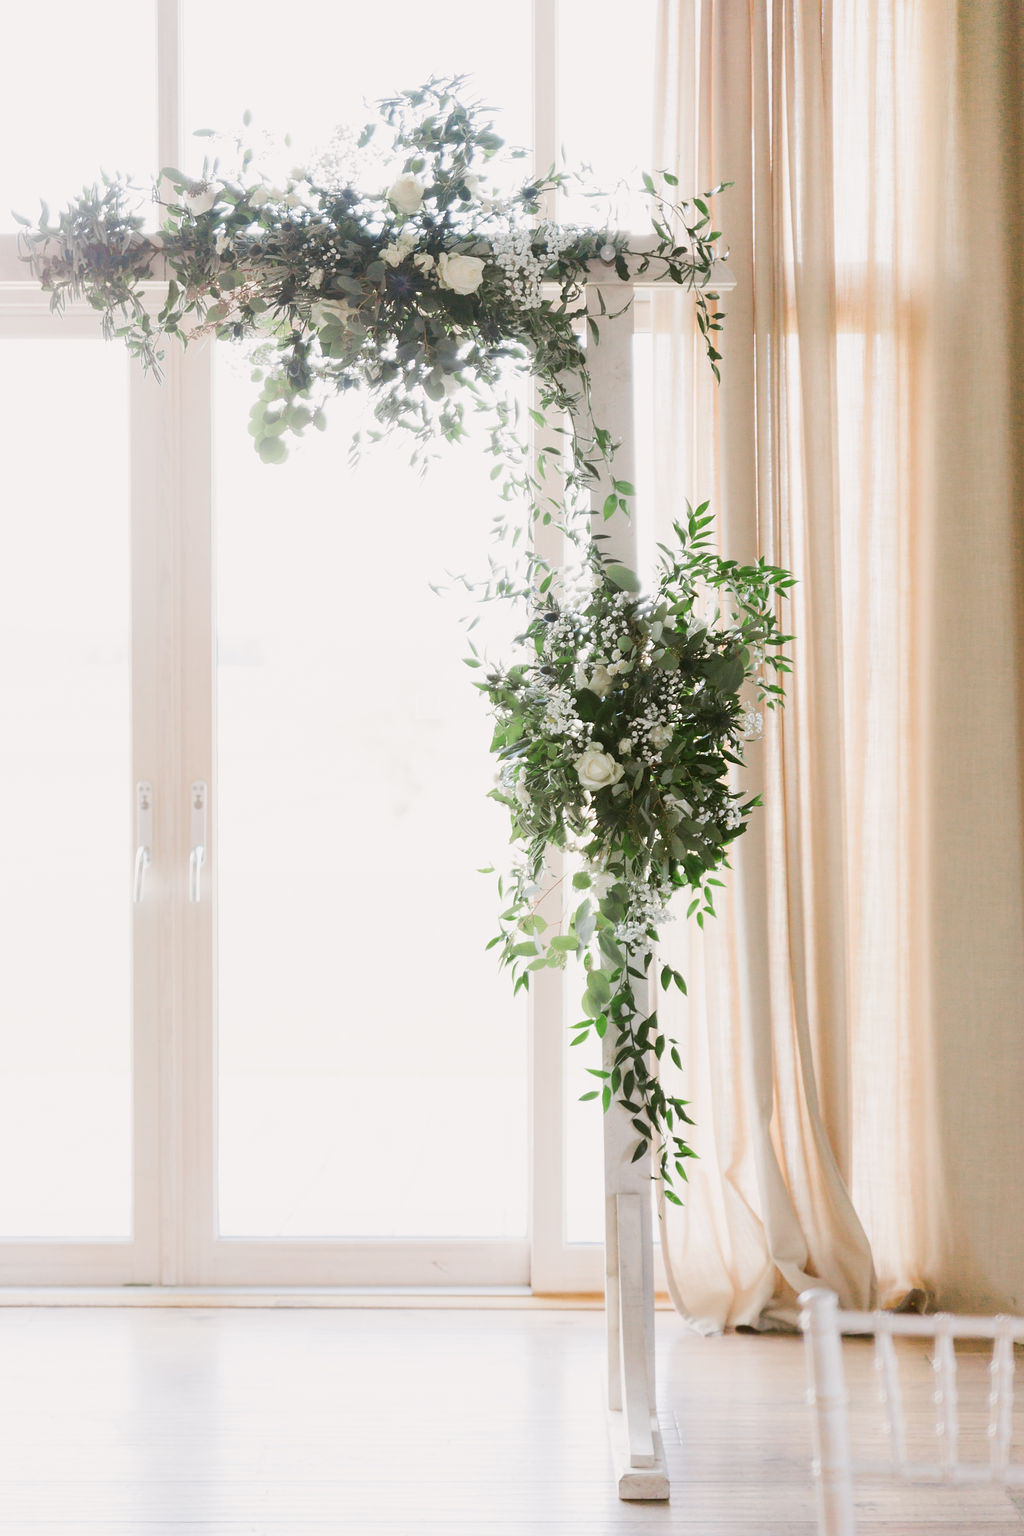 White wedding arch with green flowers | Barra Castle Wedding